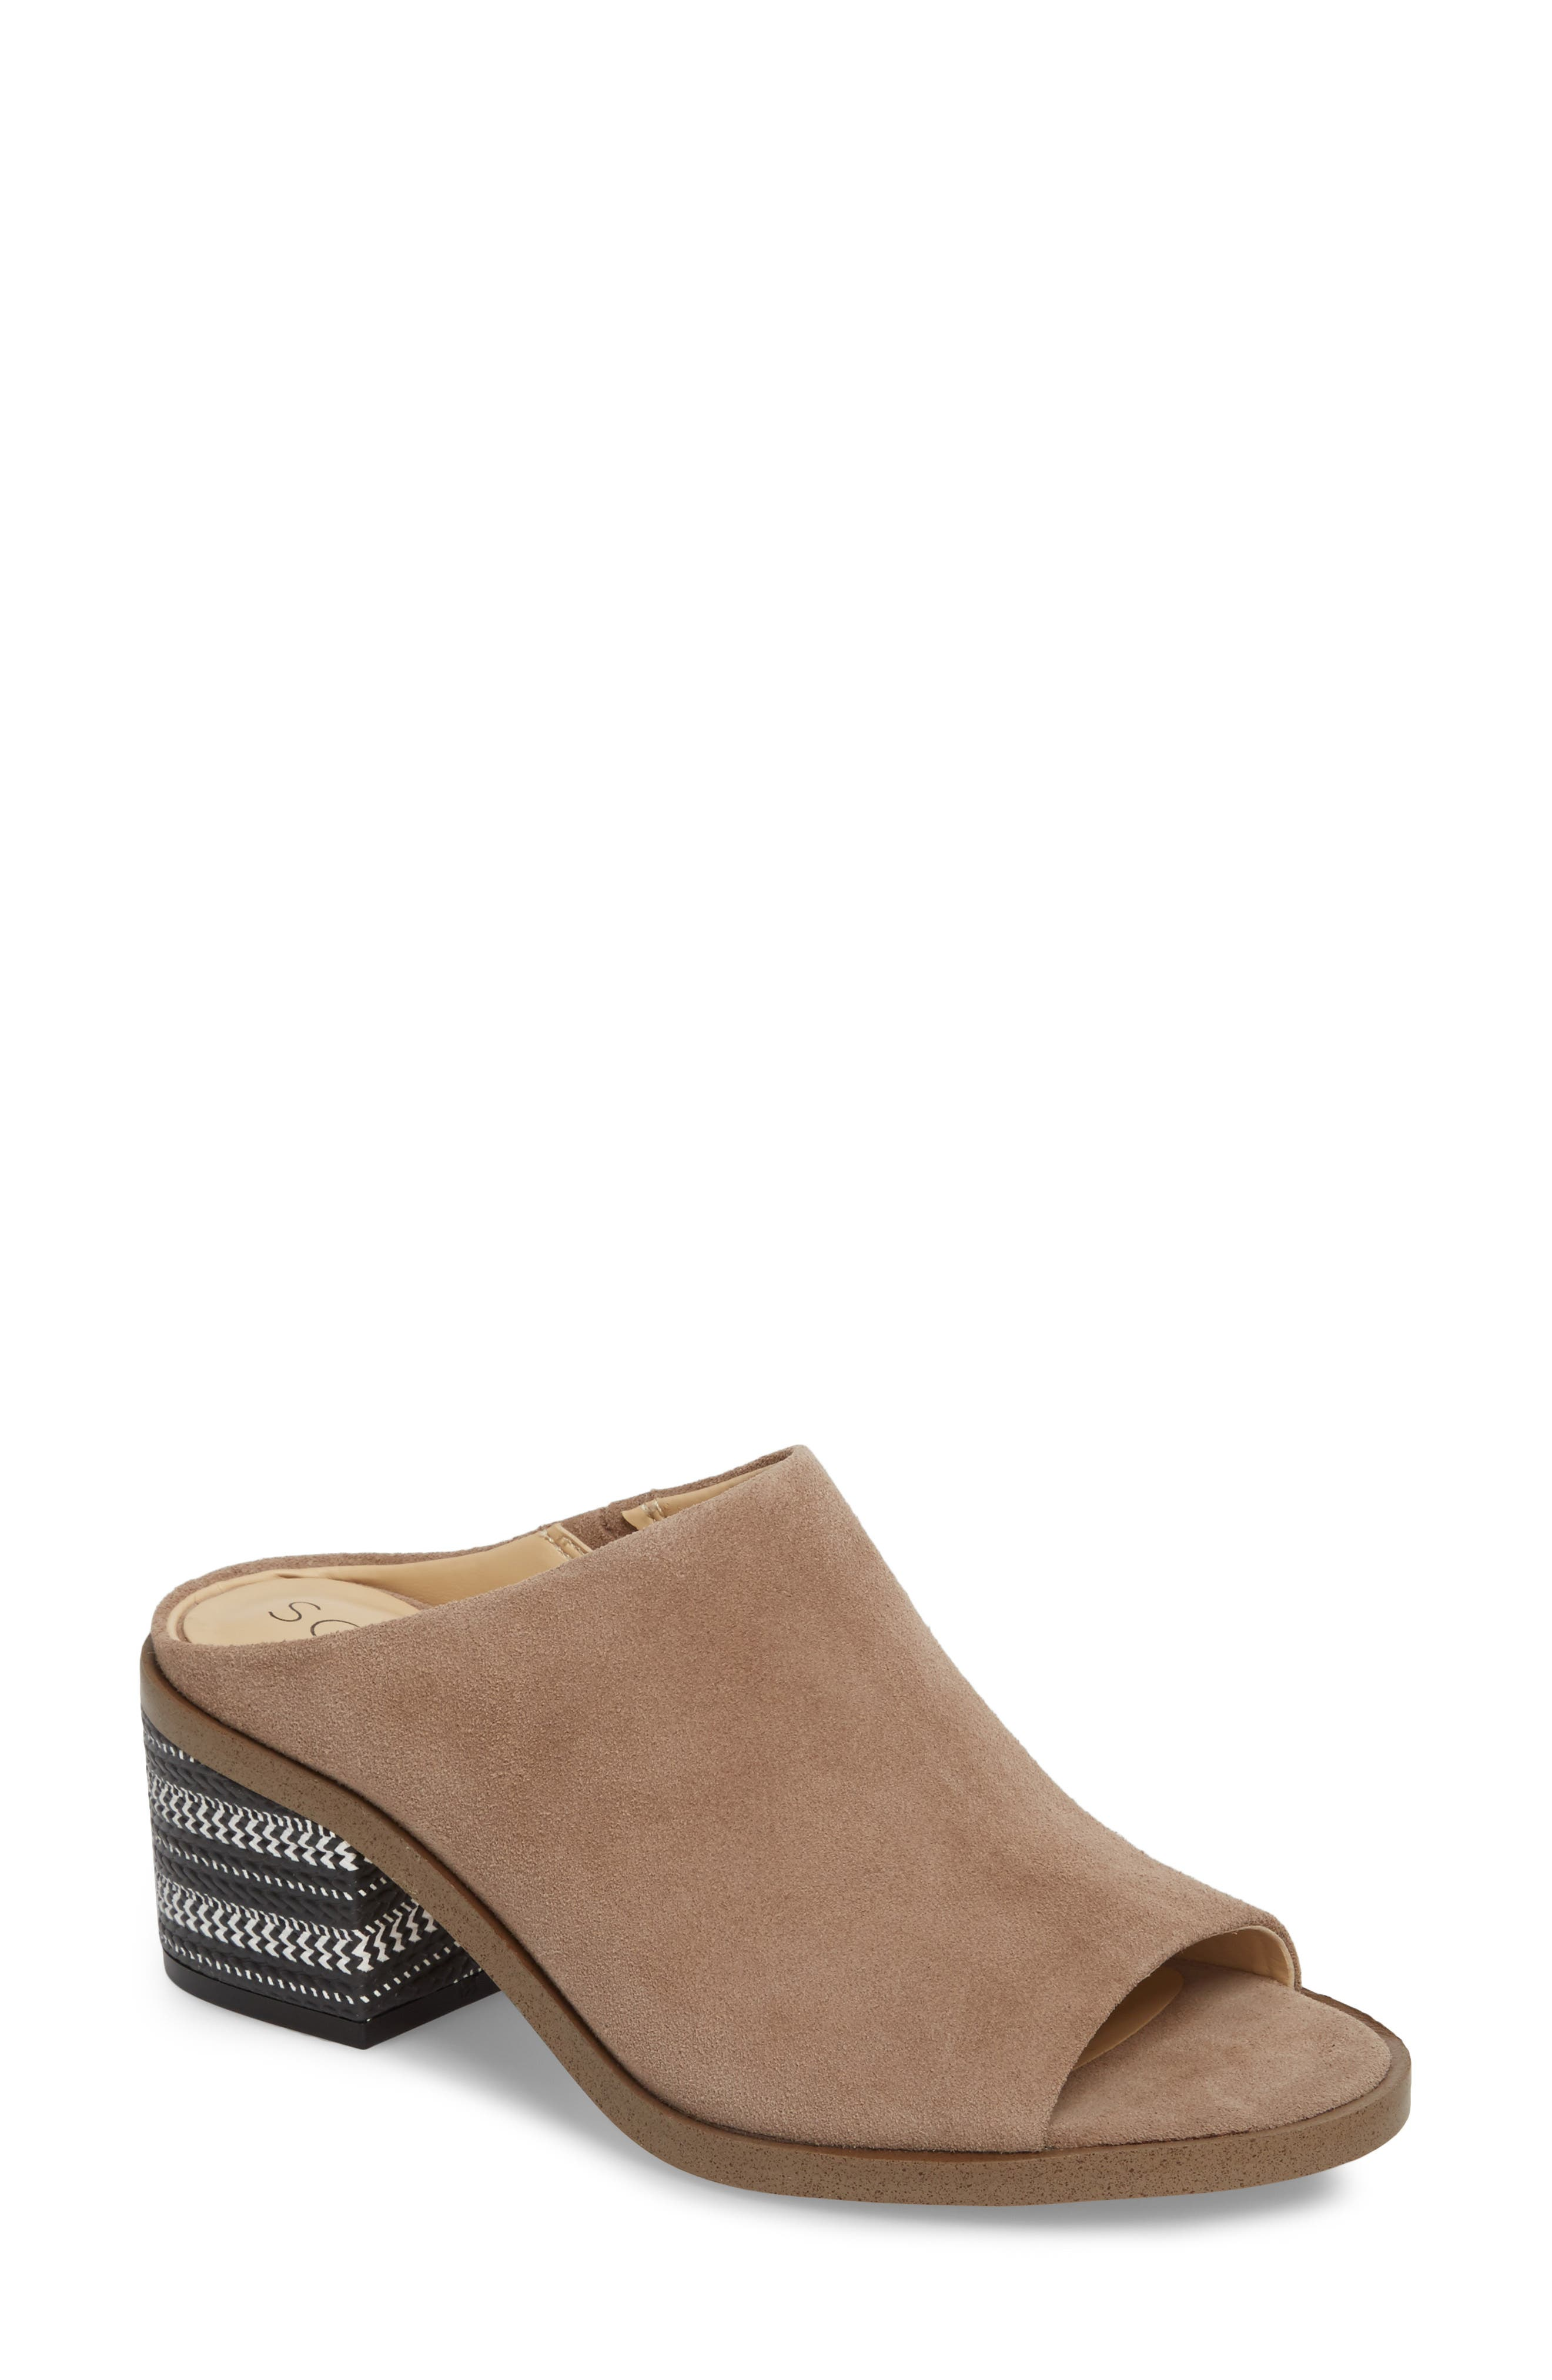 Tammie Mule,                         Main,                         color, Taupe